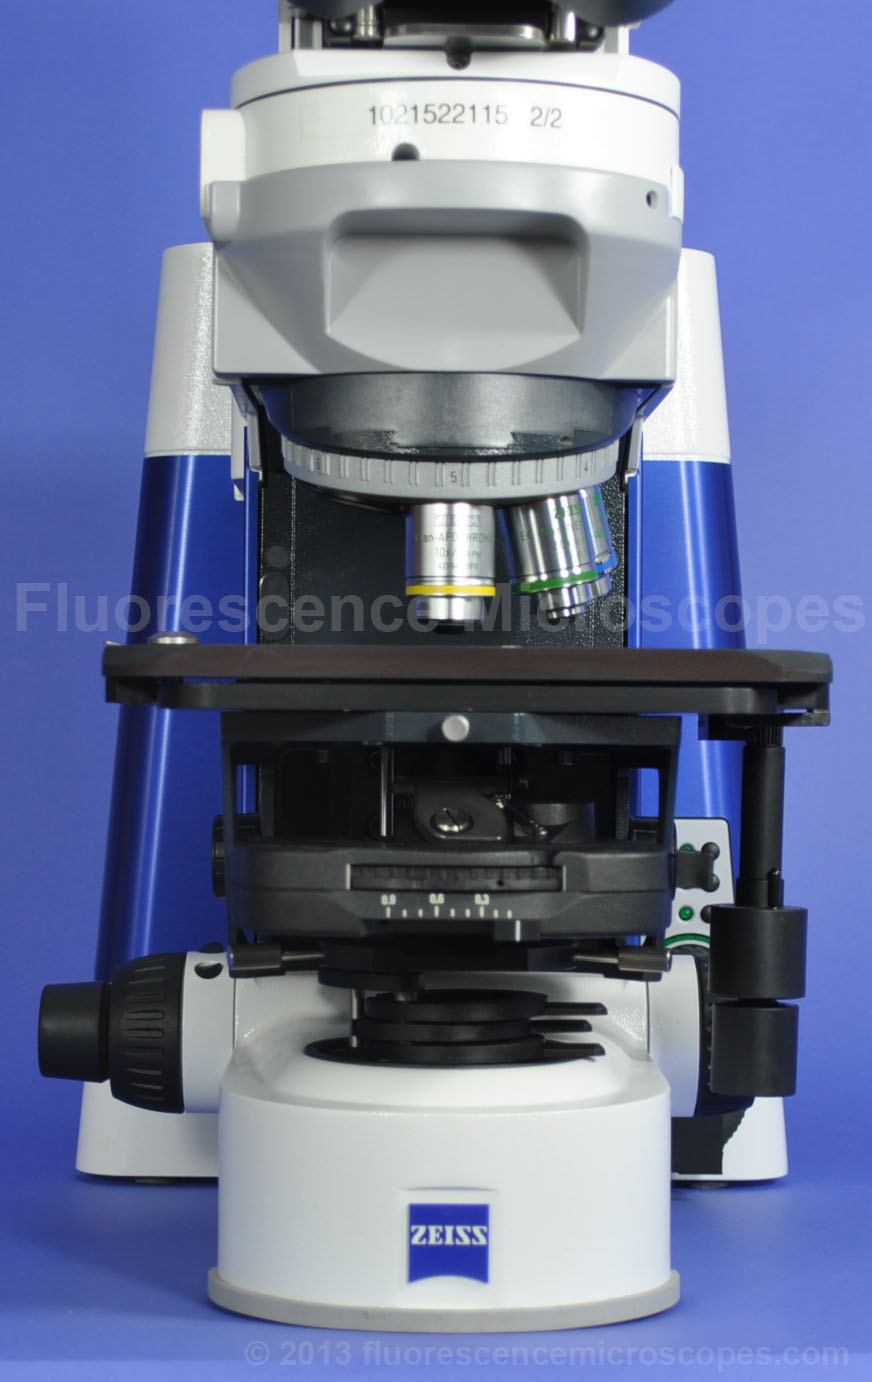 application of phase contrast microscopy